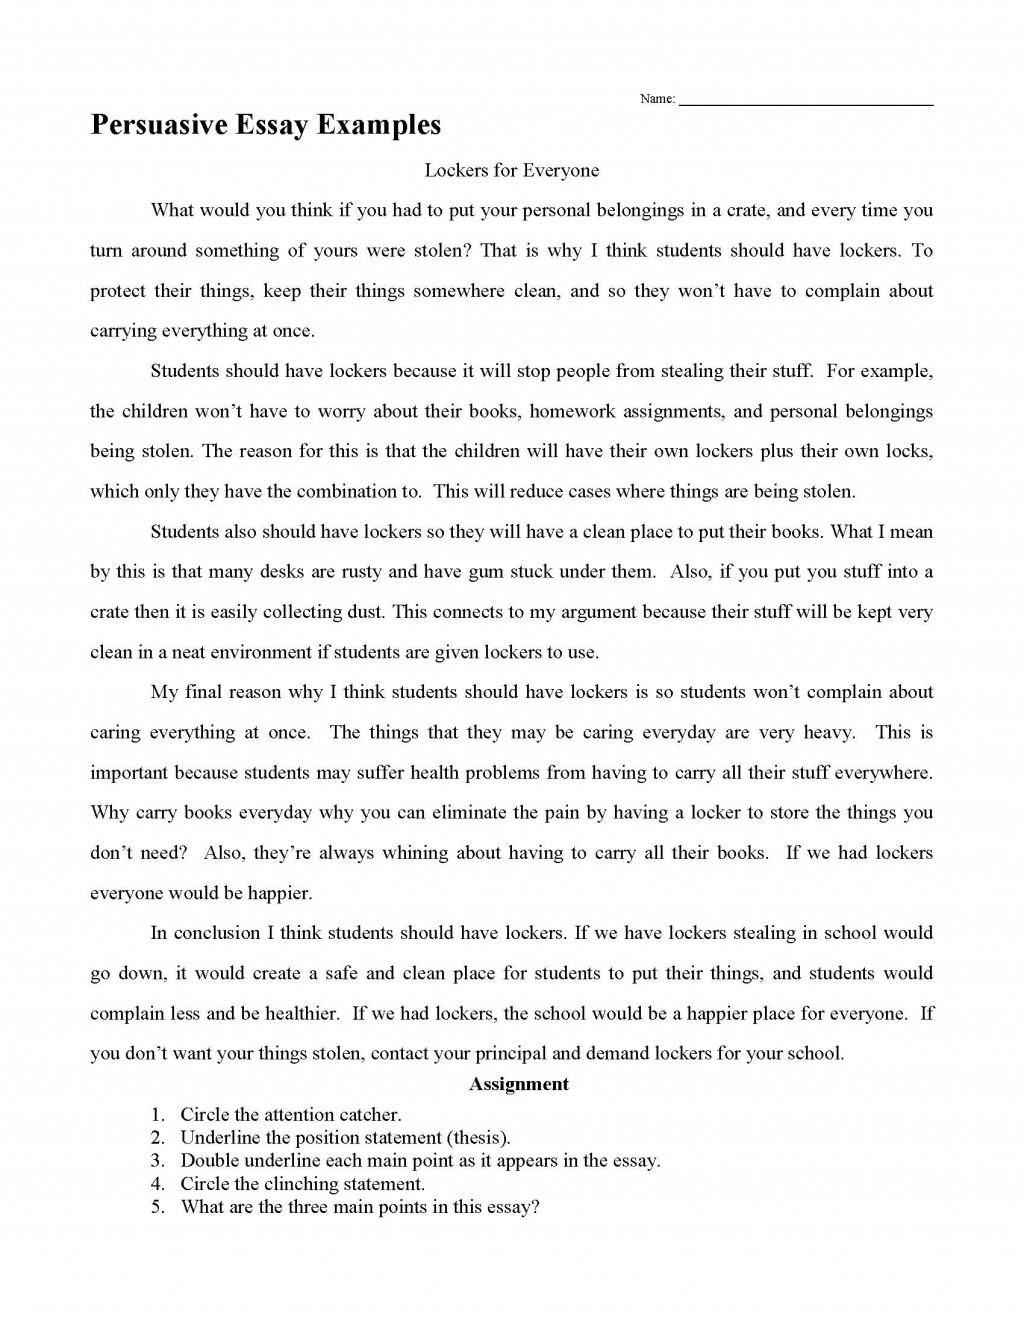 016 Research Paper Persuasive Essay Examples Unforgettable Empire Reviews Large